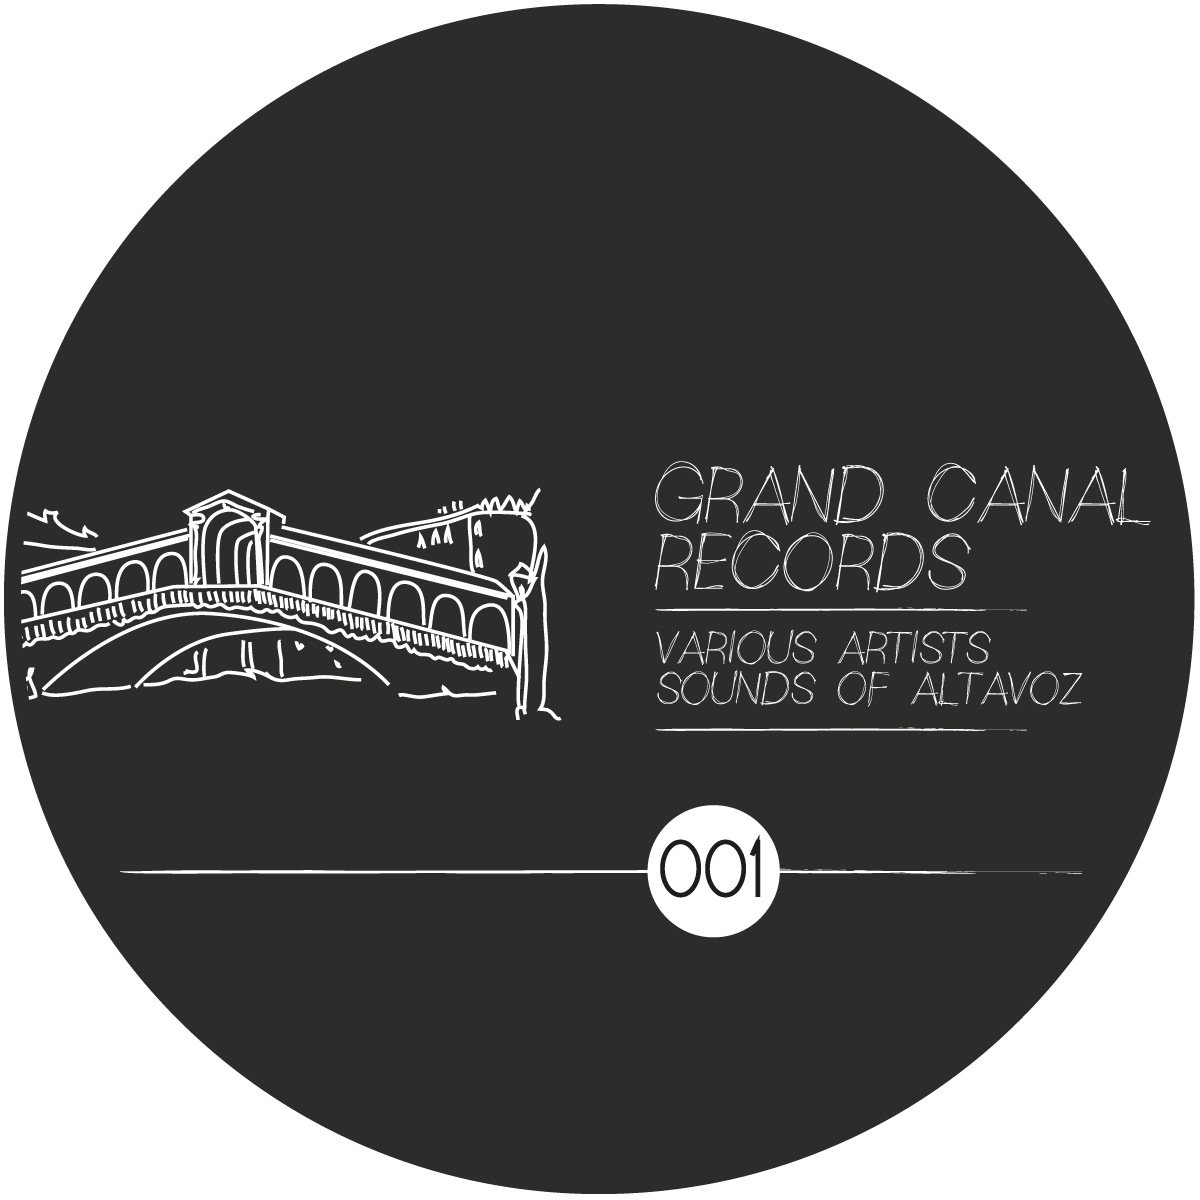 V/A – Sounds of AltaVoz EP (Grand Canal)